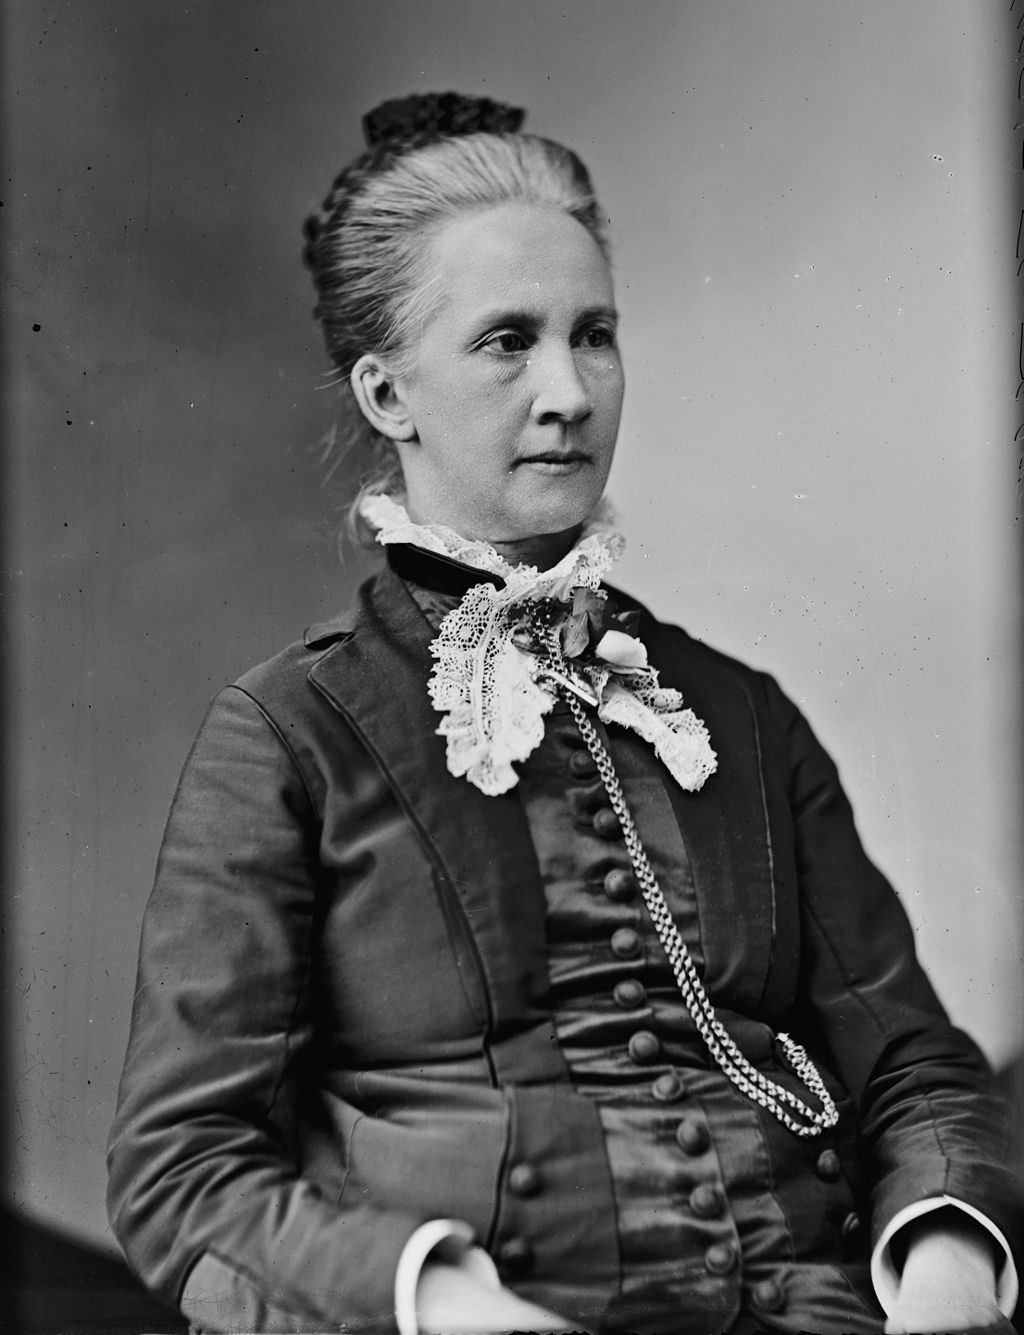 <p>Belva Ann Lockwood was both the first woman to appear on an official presidential ballot and the first female attorney to argue before the Supreme Court. Belva was awarded her law degree from what is now the{&amp;nbsp;}George Washington University Law School and went on to argue two cases before the Supreme Court. Lockwood was a noted suffragette and ran for president on the National Equal Rights Party. (Public domain image via Library of Congress)</p>